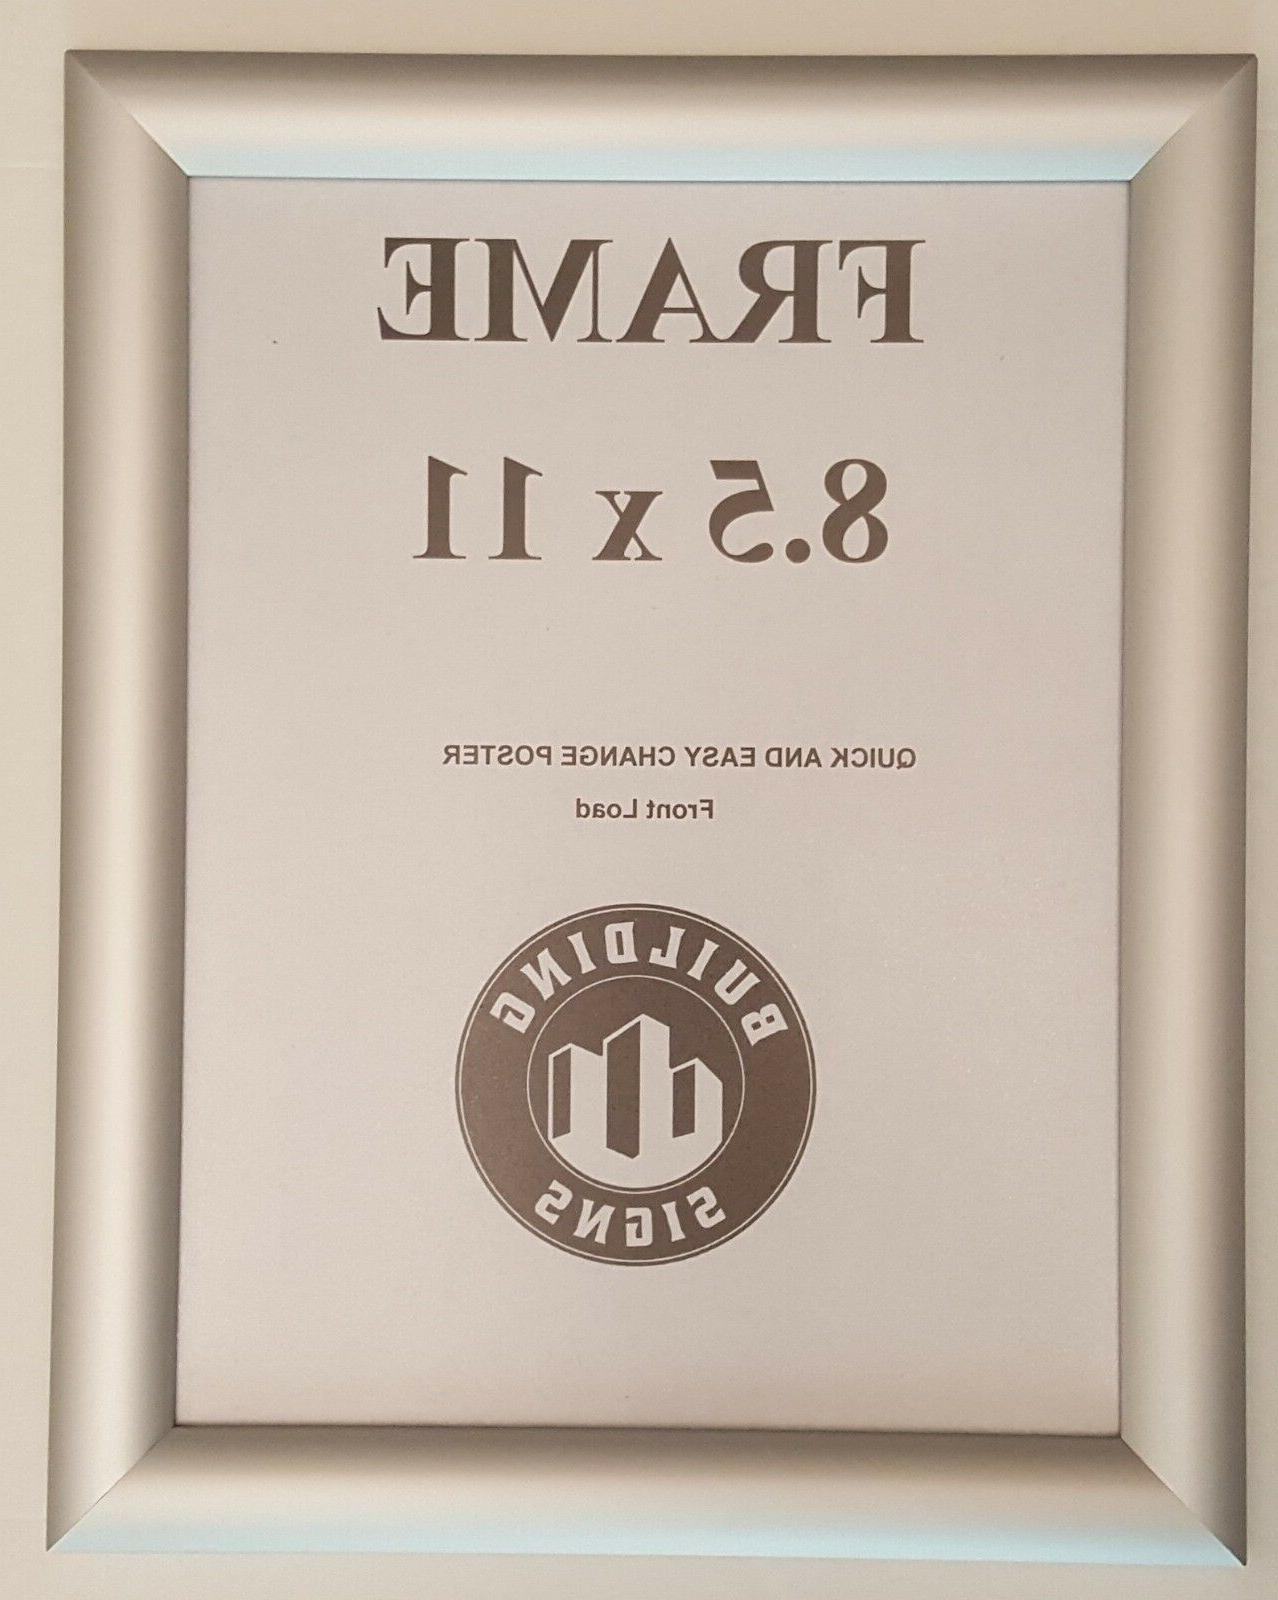 silver snap frame 8 5x11 inches front